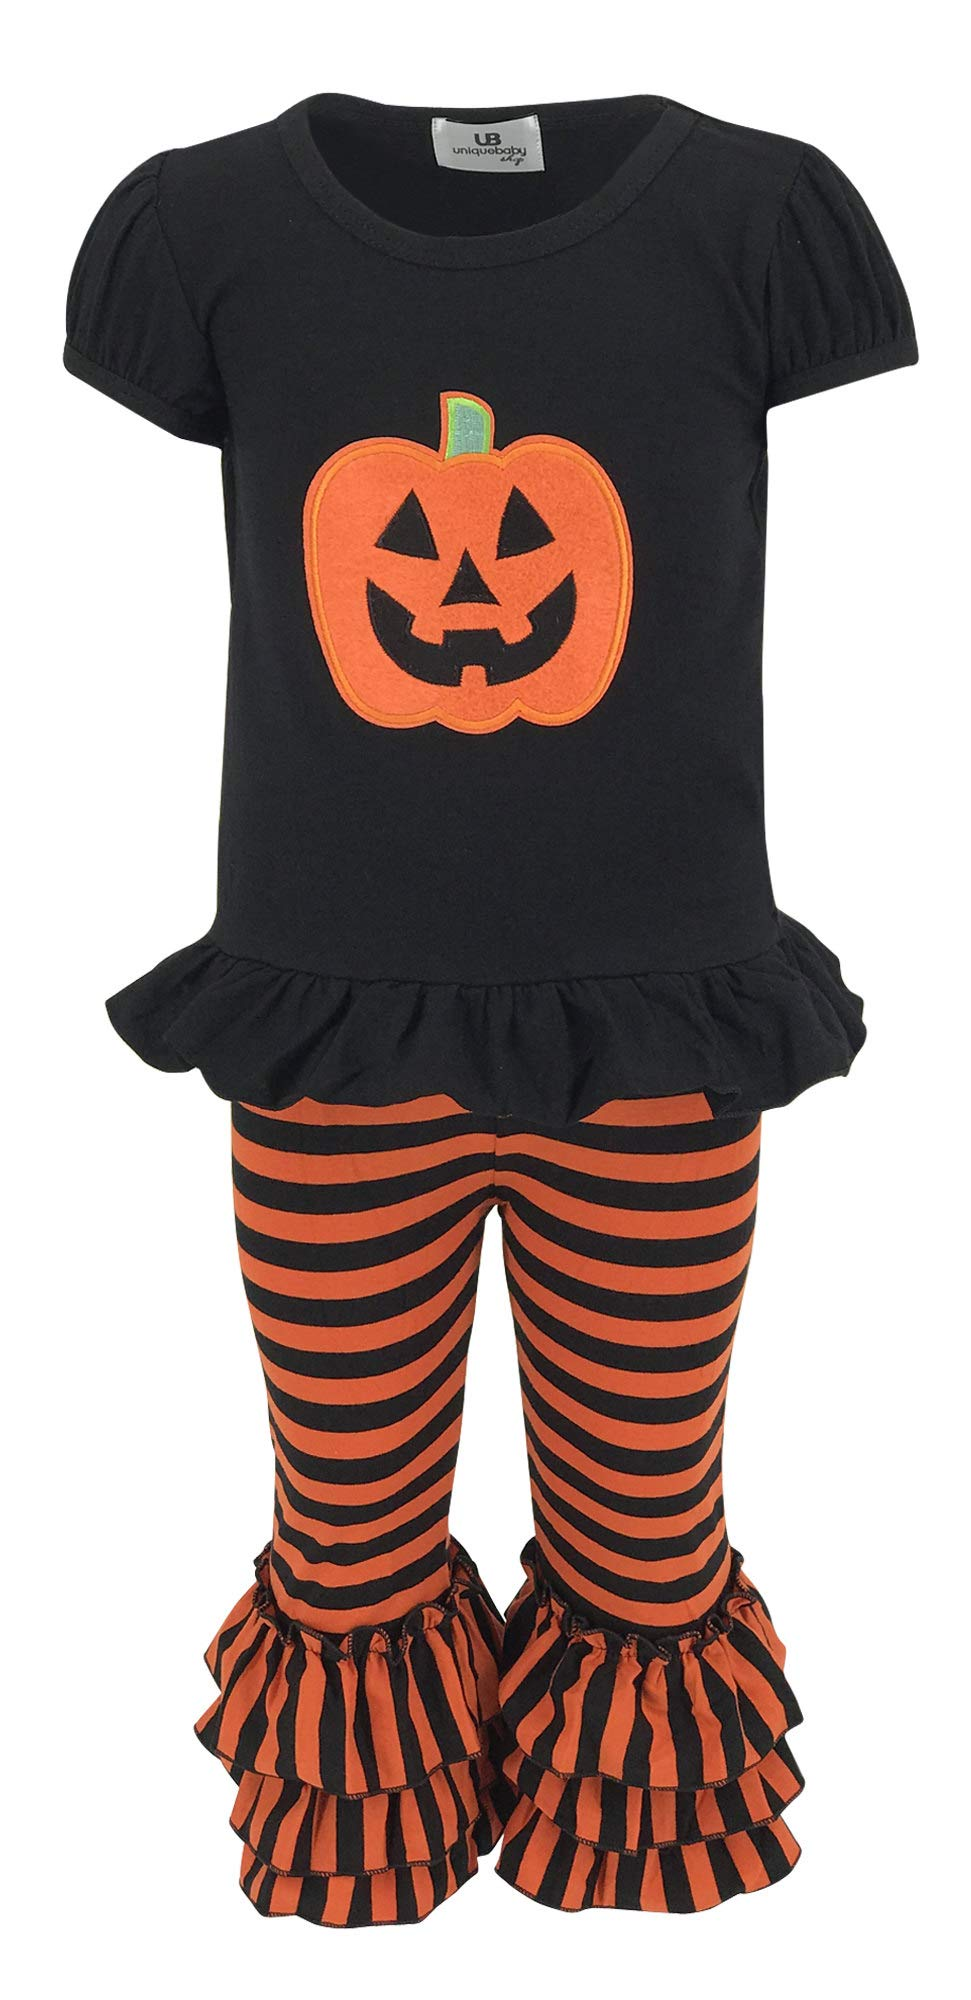 Unique Baby Baby-Girls 2 Piece Halloween Pumpkin Outfit (4t) Orange by Unique Baby